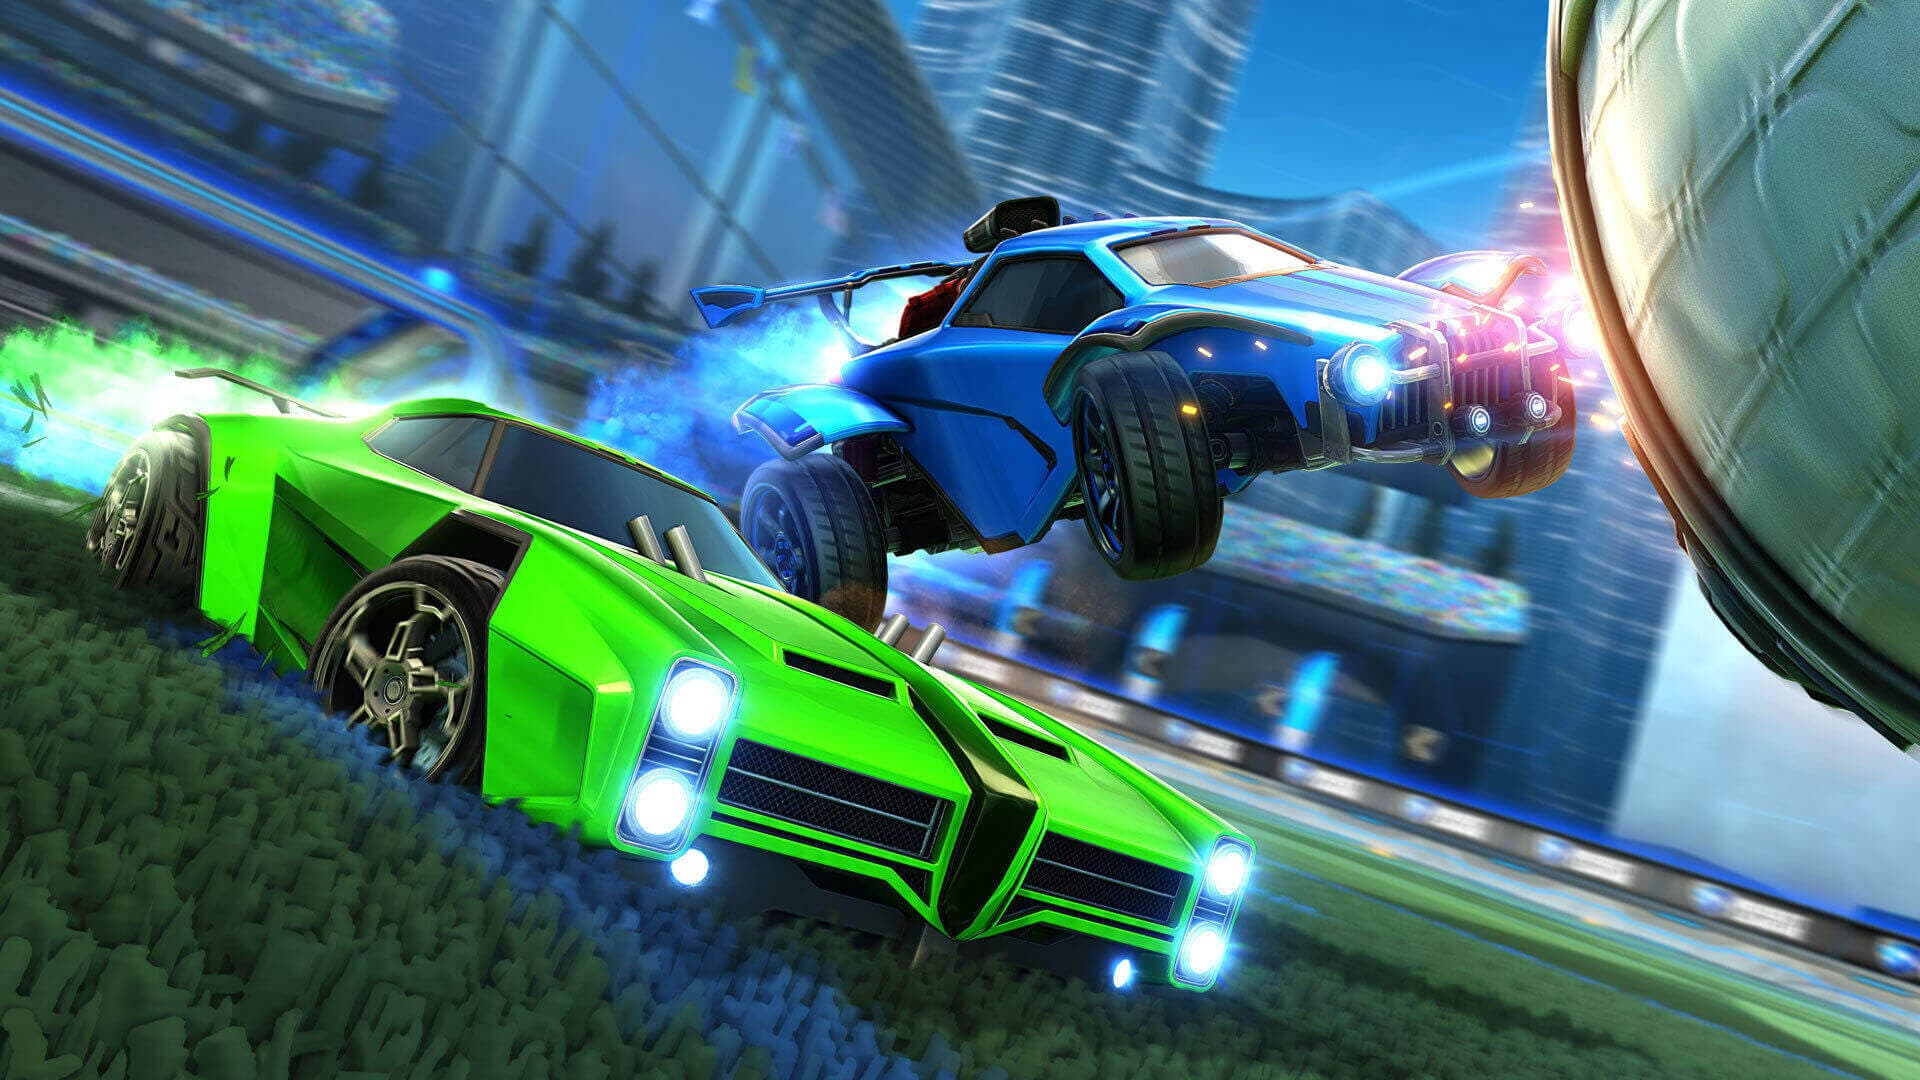 Rocket League at 120 FPS on Xbox Series X | S and not on PS5